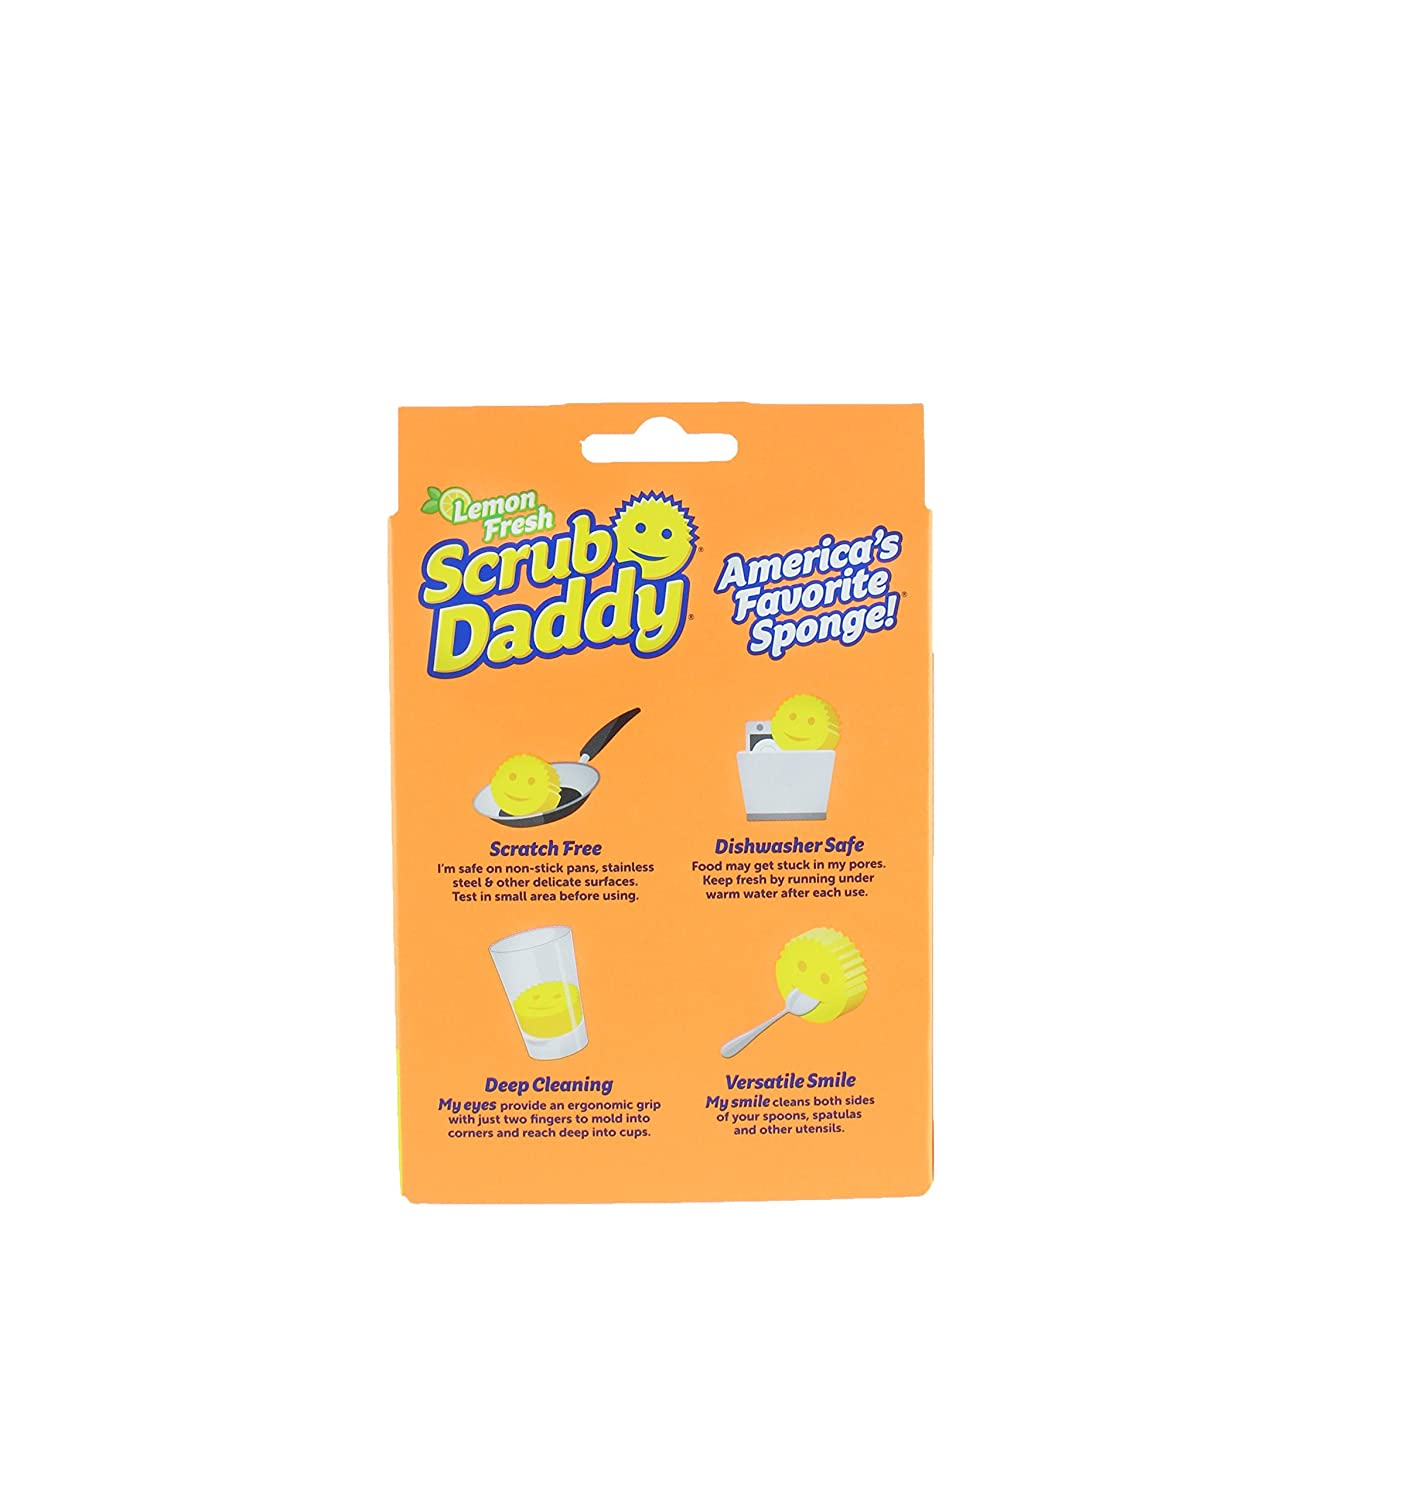 Washing up sponge Hygienic Scourer Odour Free Single, Green Scrub Daddy Scratch Free Texture Changing Doesnt Scratch Any Surface